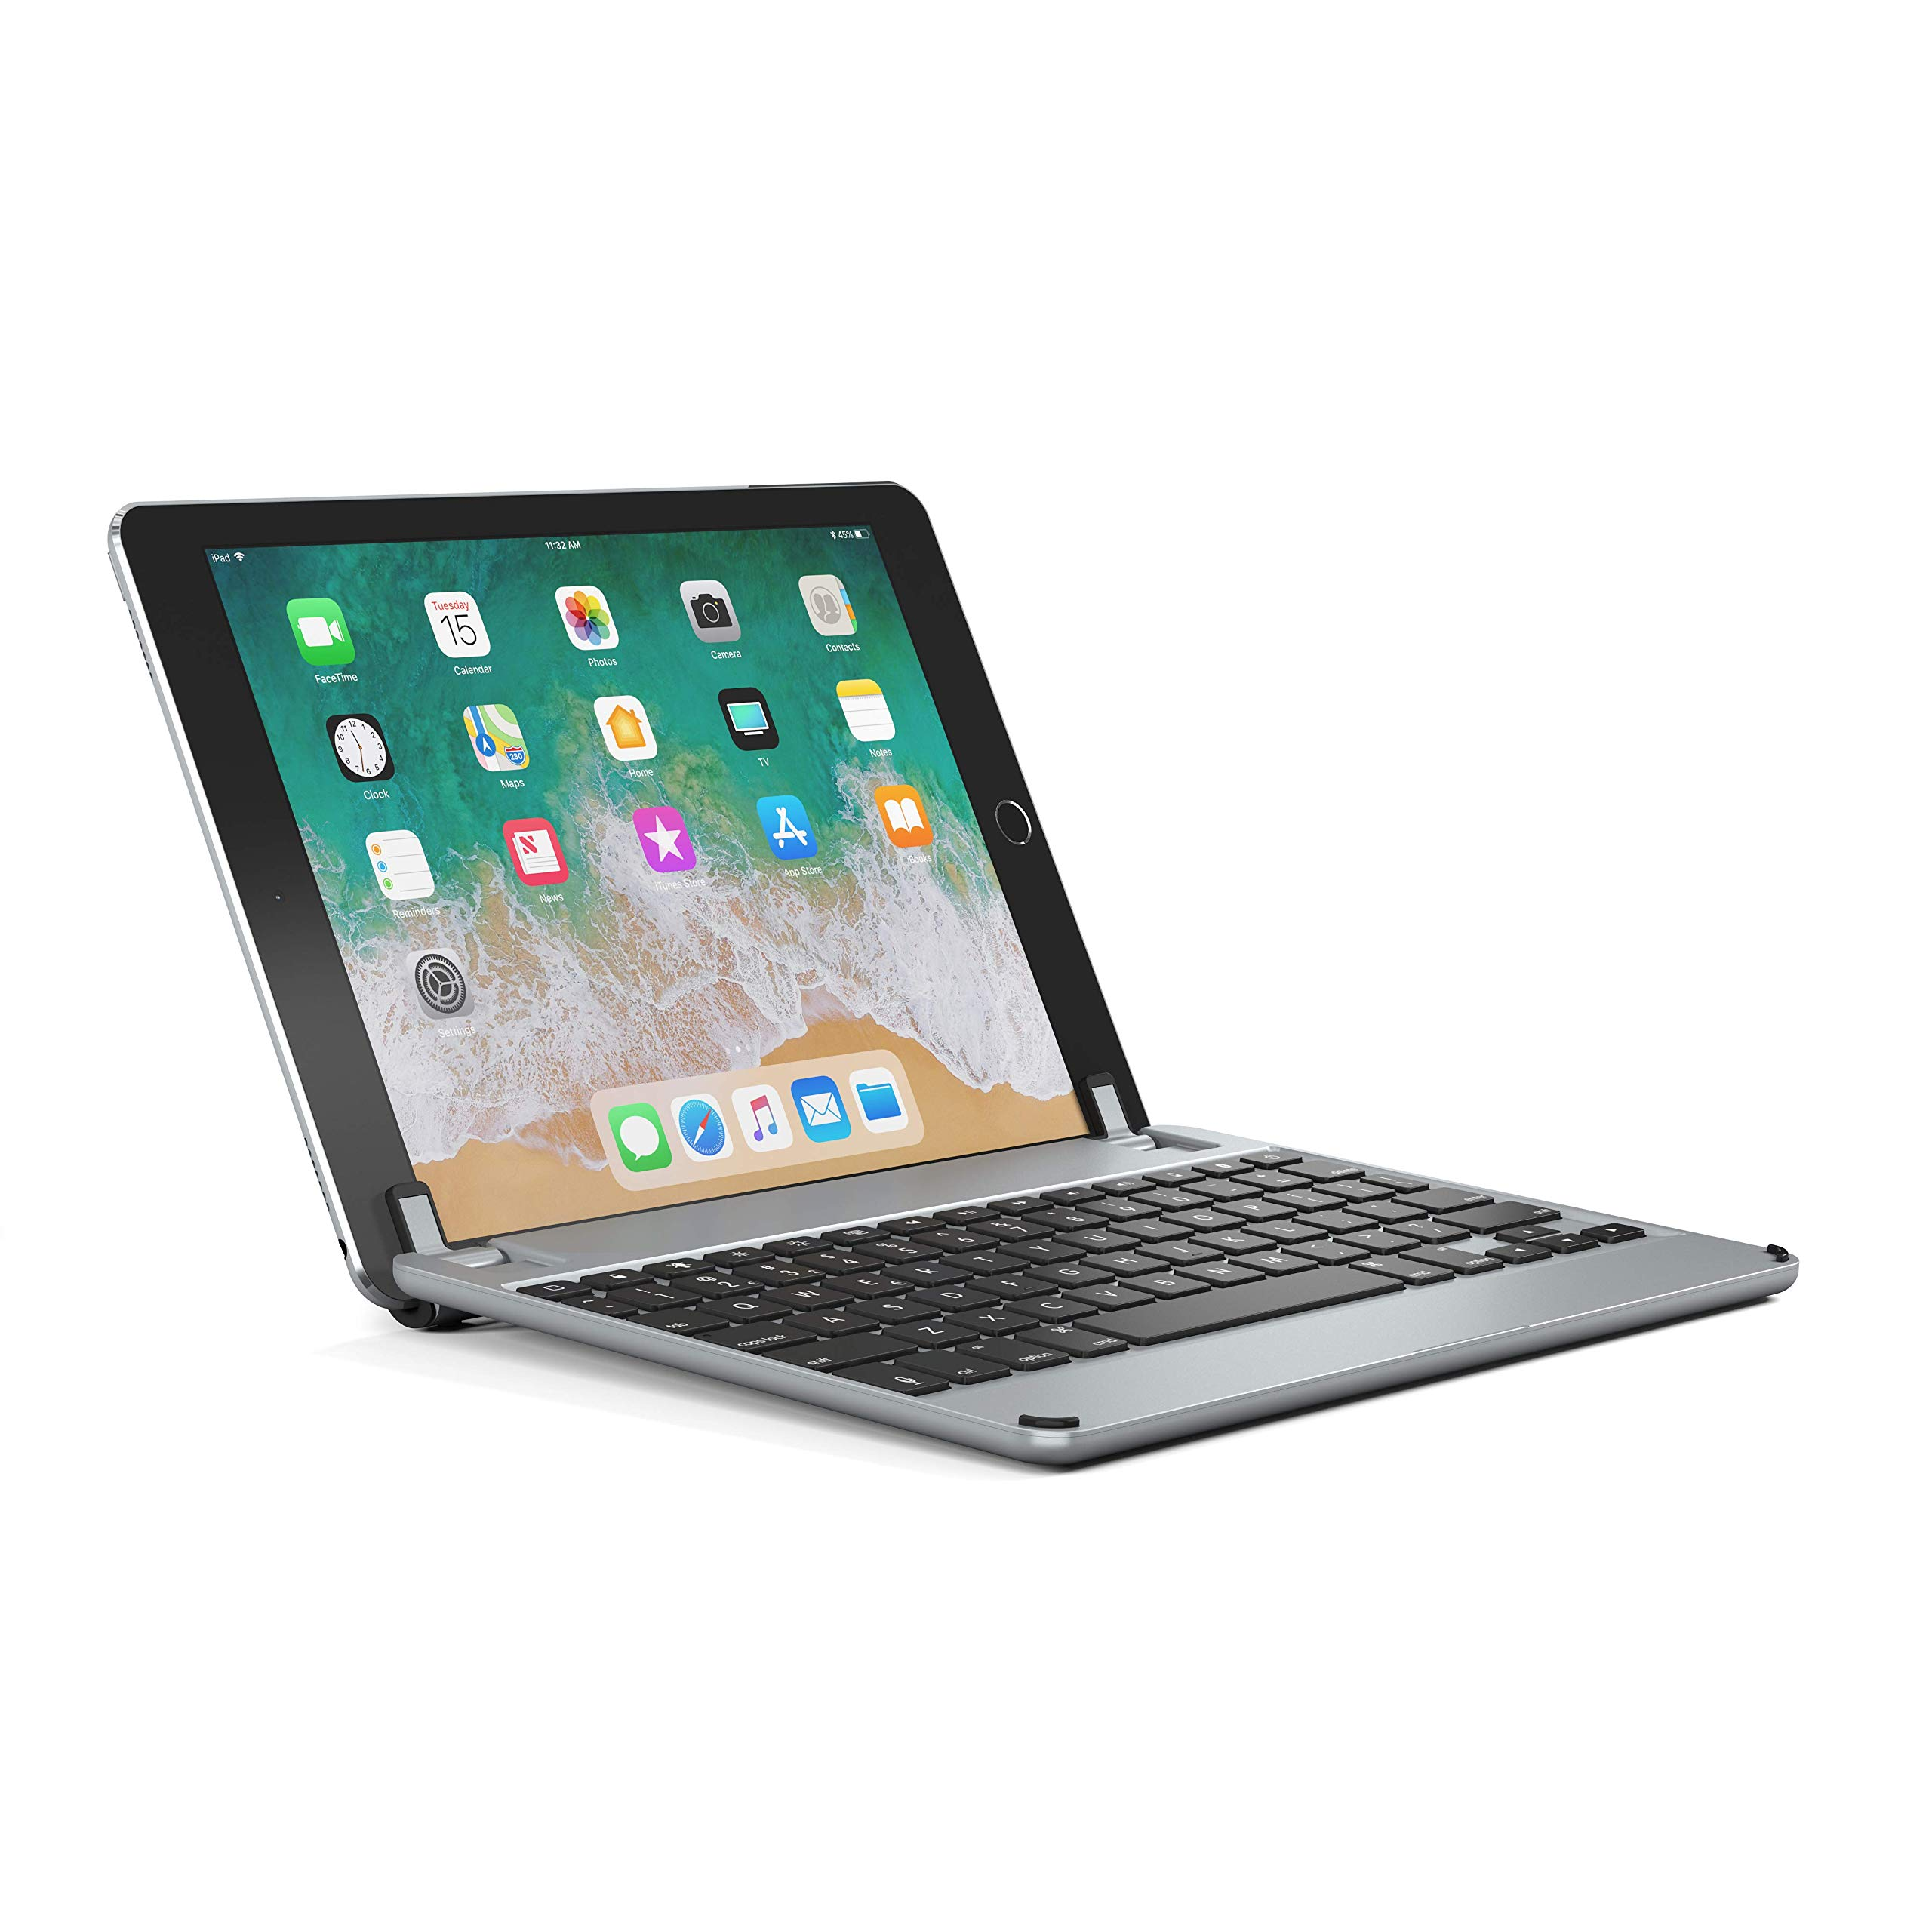 Brydge 9.7 Keyboard for iPad 9.7-inch, Aluminum Bluetooth Keyboard for iPad 6th Gen (2018), iPad 5th Gen (2017), iPad Pro 9.7 inch, iPad Air 1 and Air 2 (Space Gray)